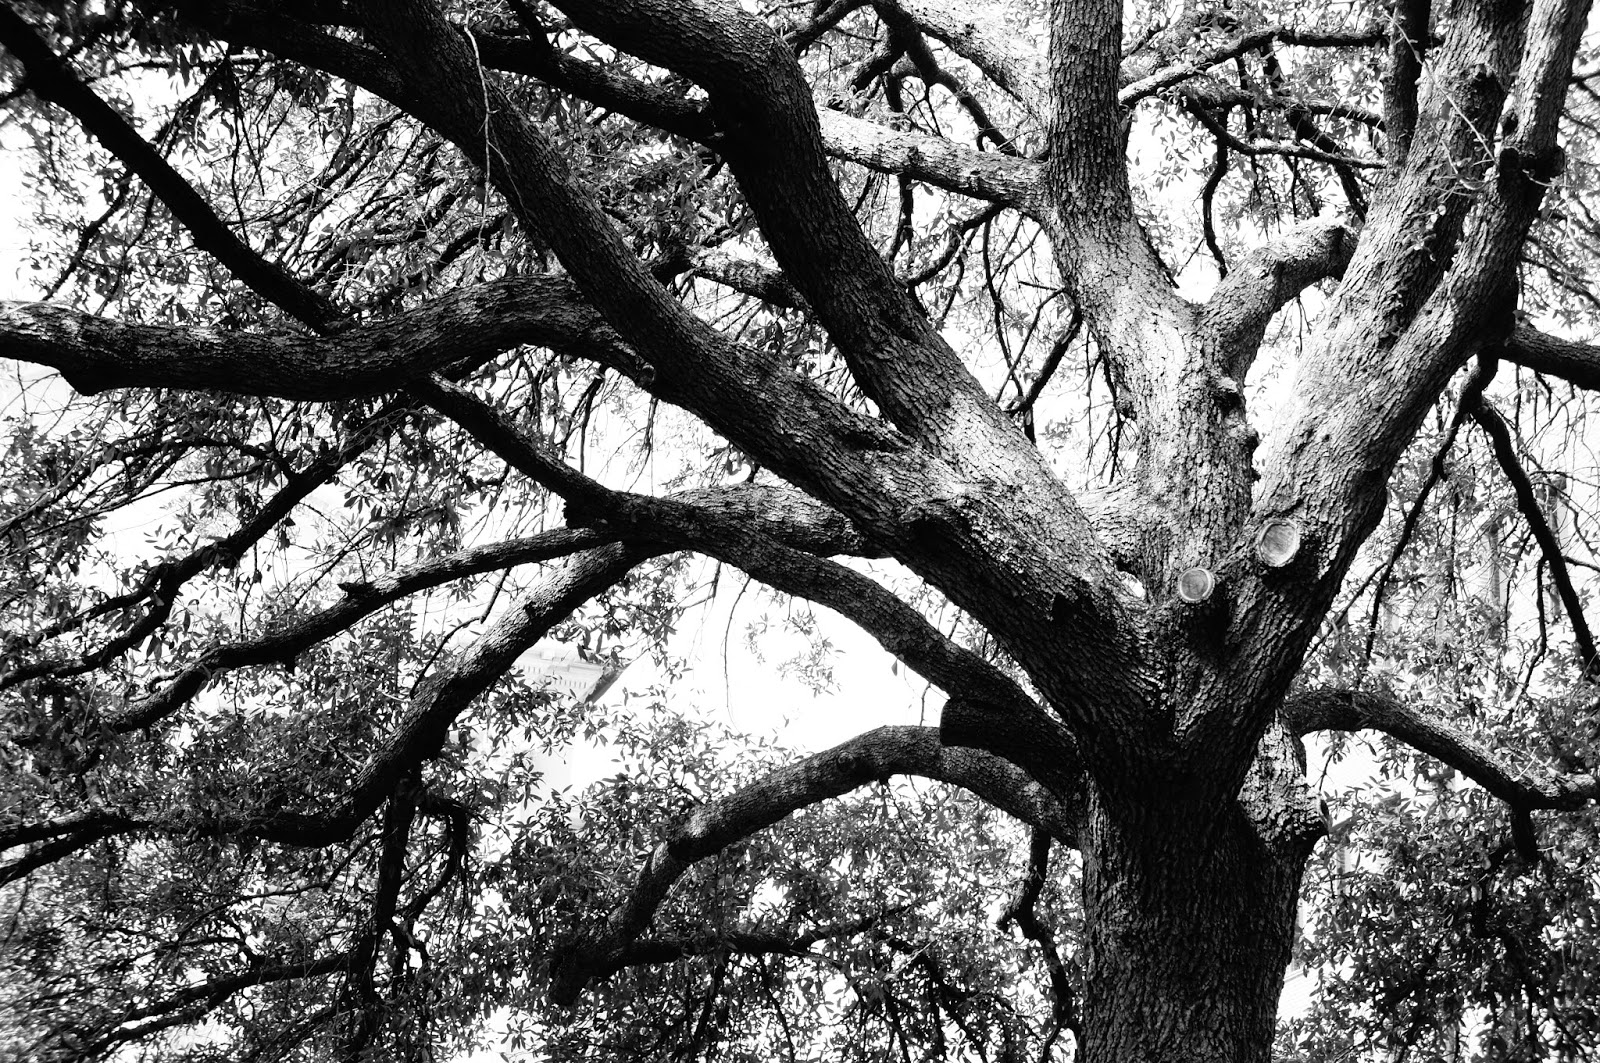 black and white tree public domain picture 1 million free pictures. Black Bedroom Furniture Sets. Home Design Ideas